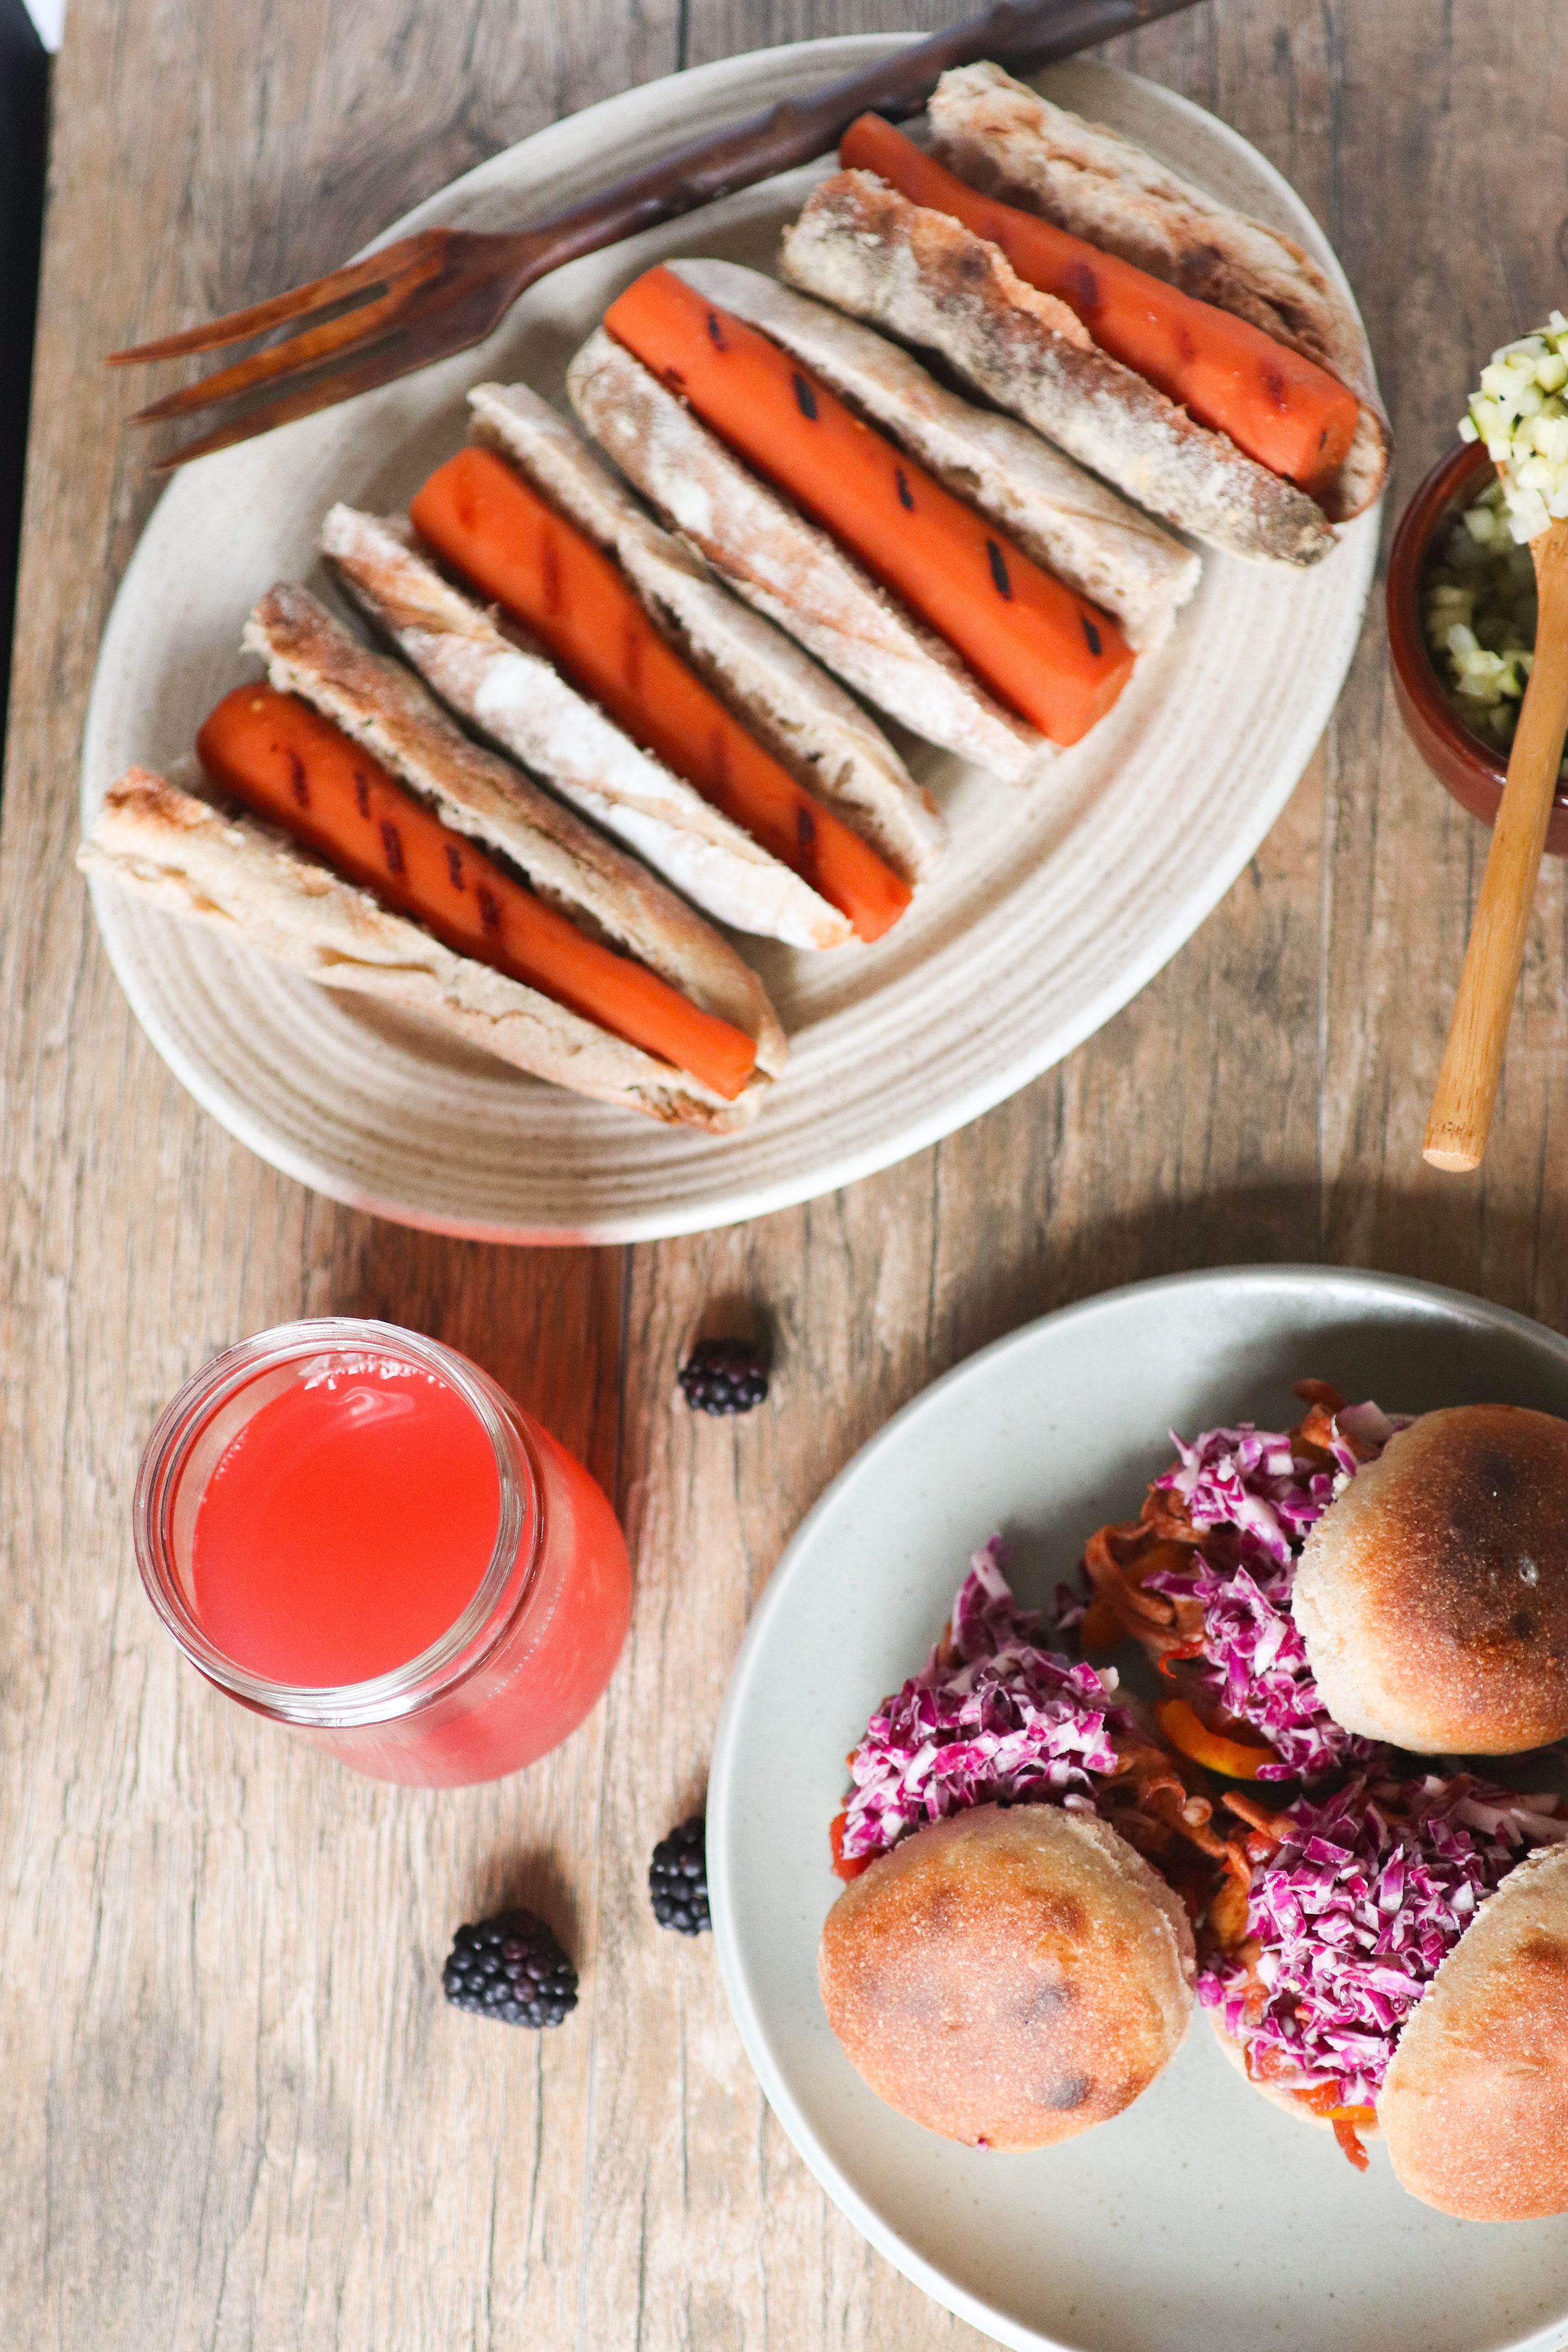 ebook, summer, barbeque, plant based, carrot dogs, vegan, gather, cookout.jpg